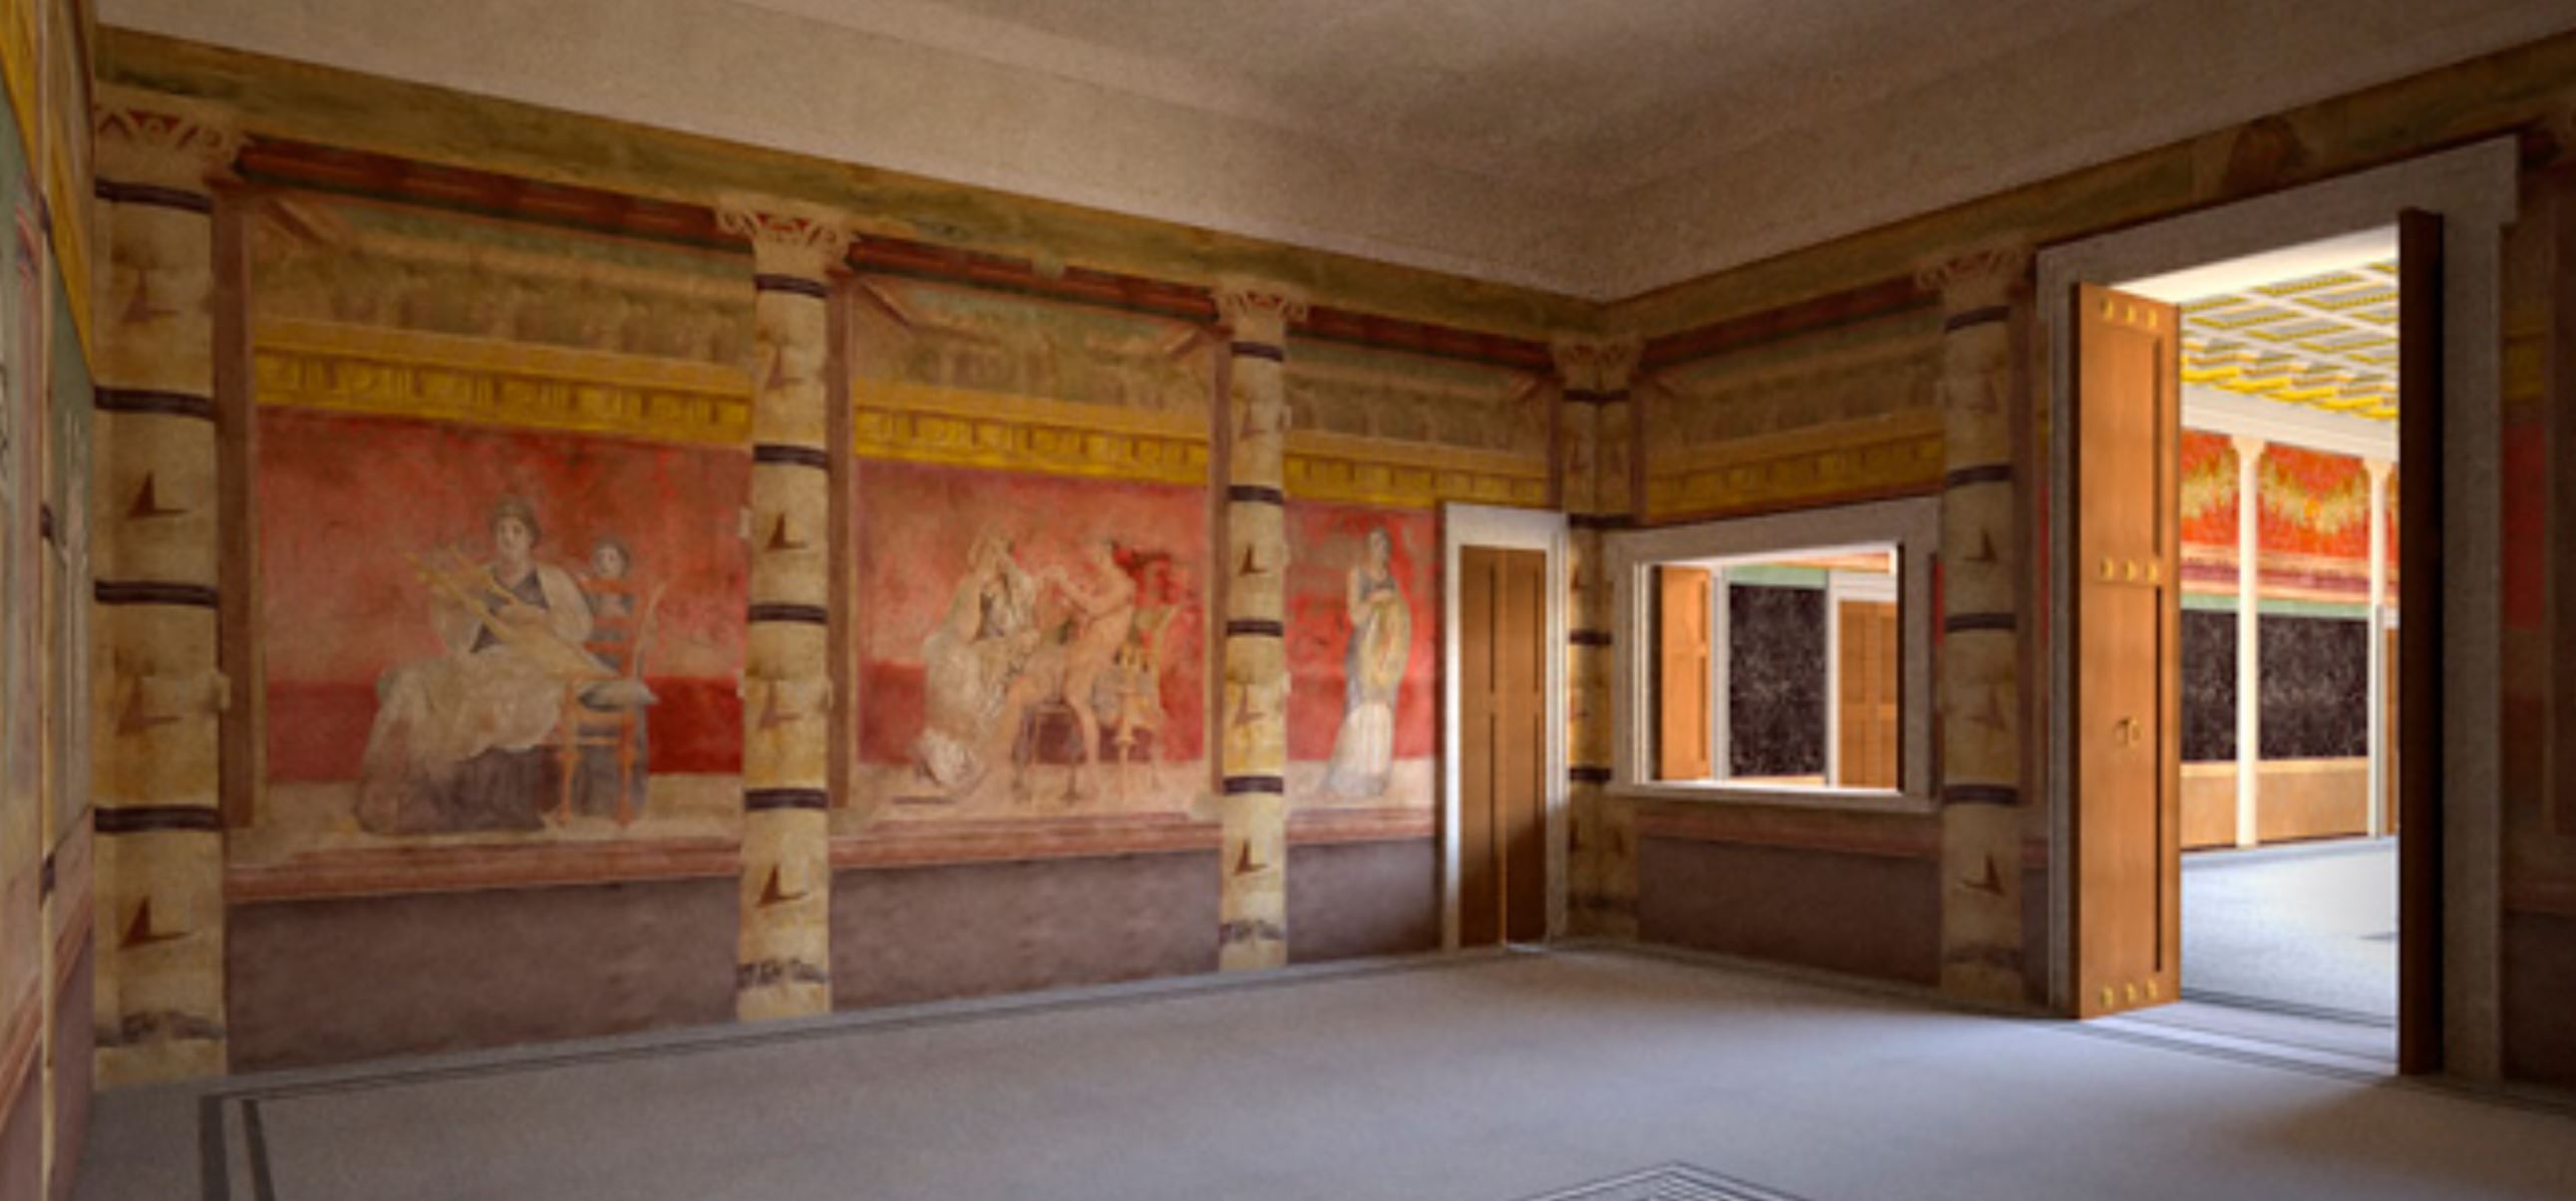 Room H of the Villa of P. Fannius Synistor at Boscoreale, ca. 40–30 B.C mur Est